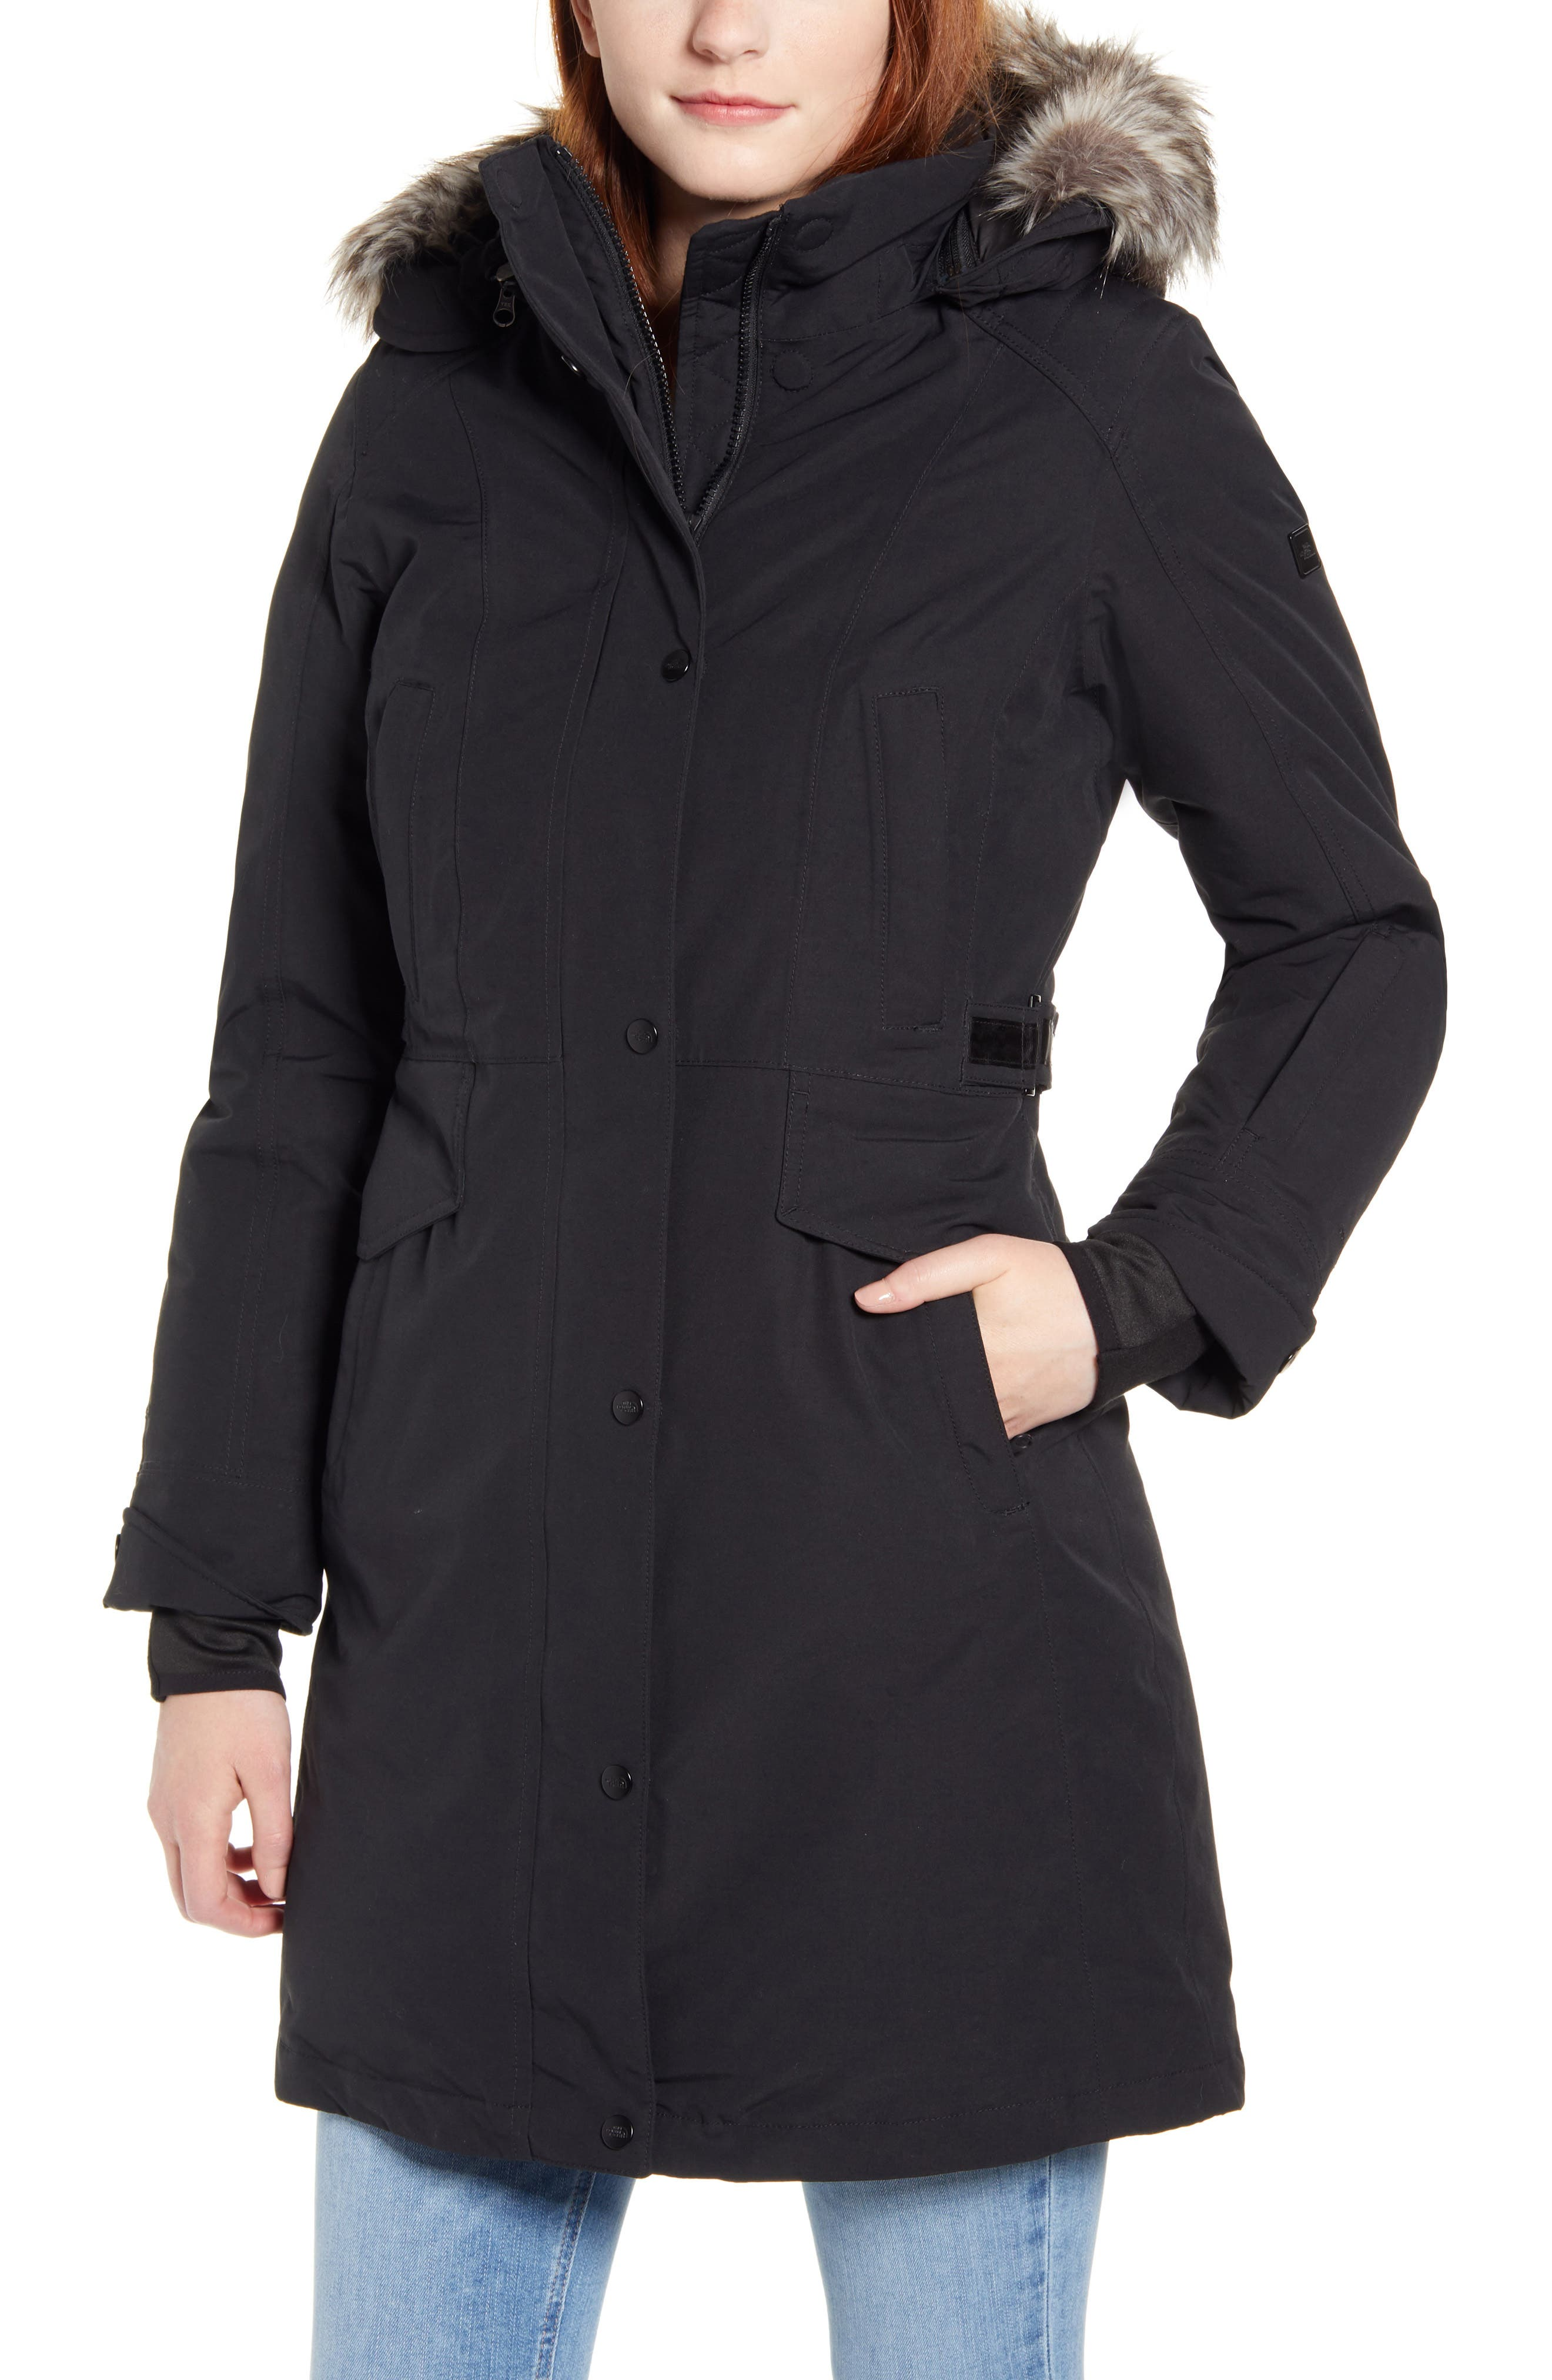 The North Face Tremaya Waterproof Down Parka with Faux Fur Trim